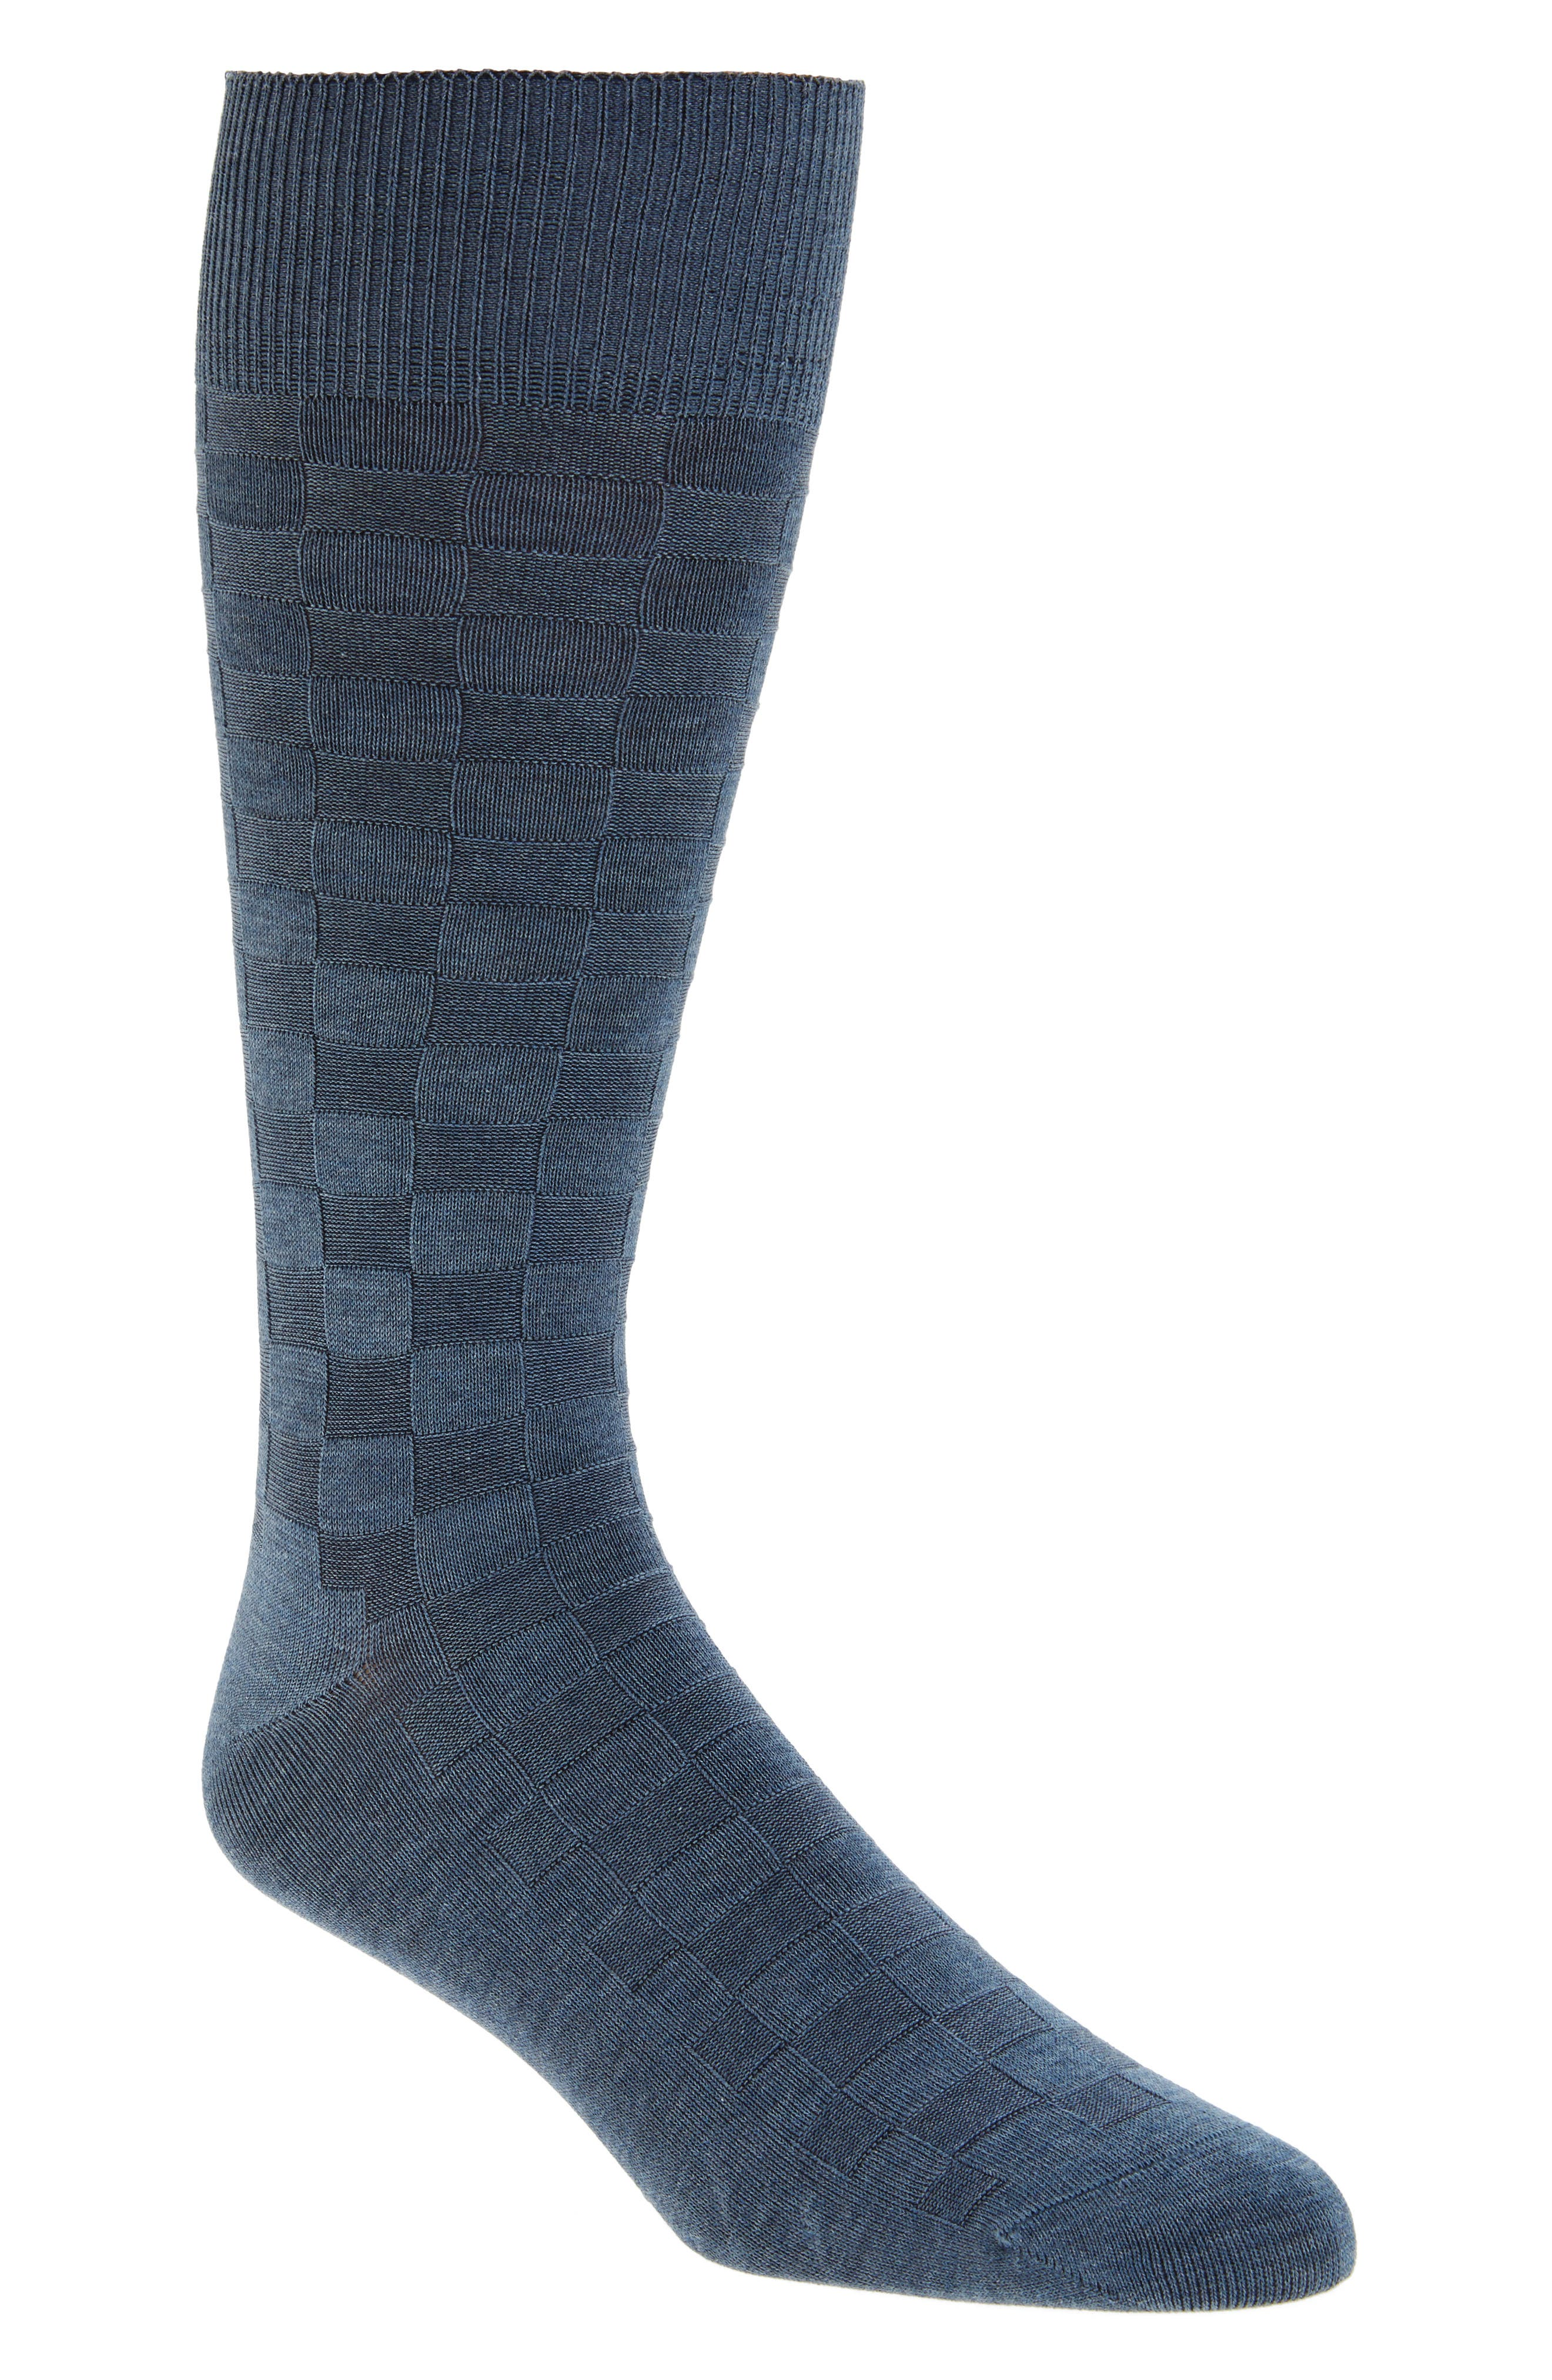 CALIBRATE Grid Socks